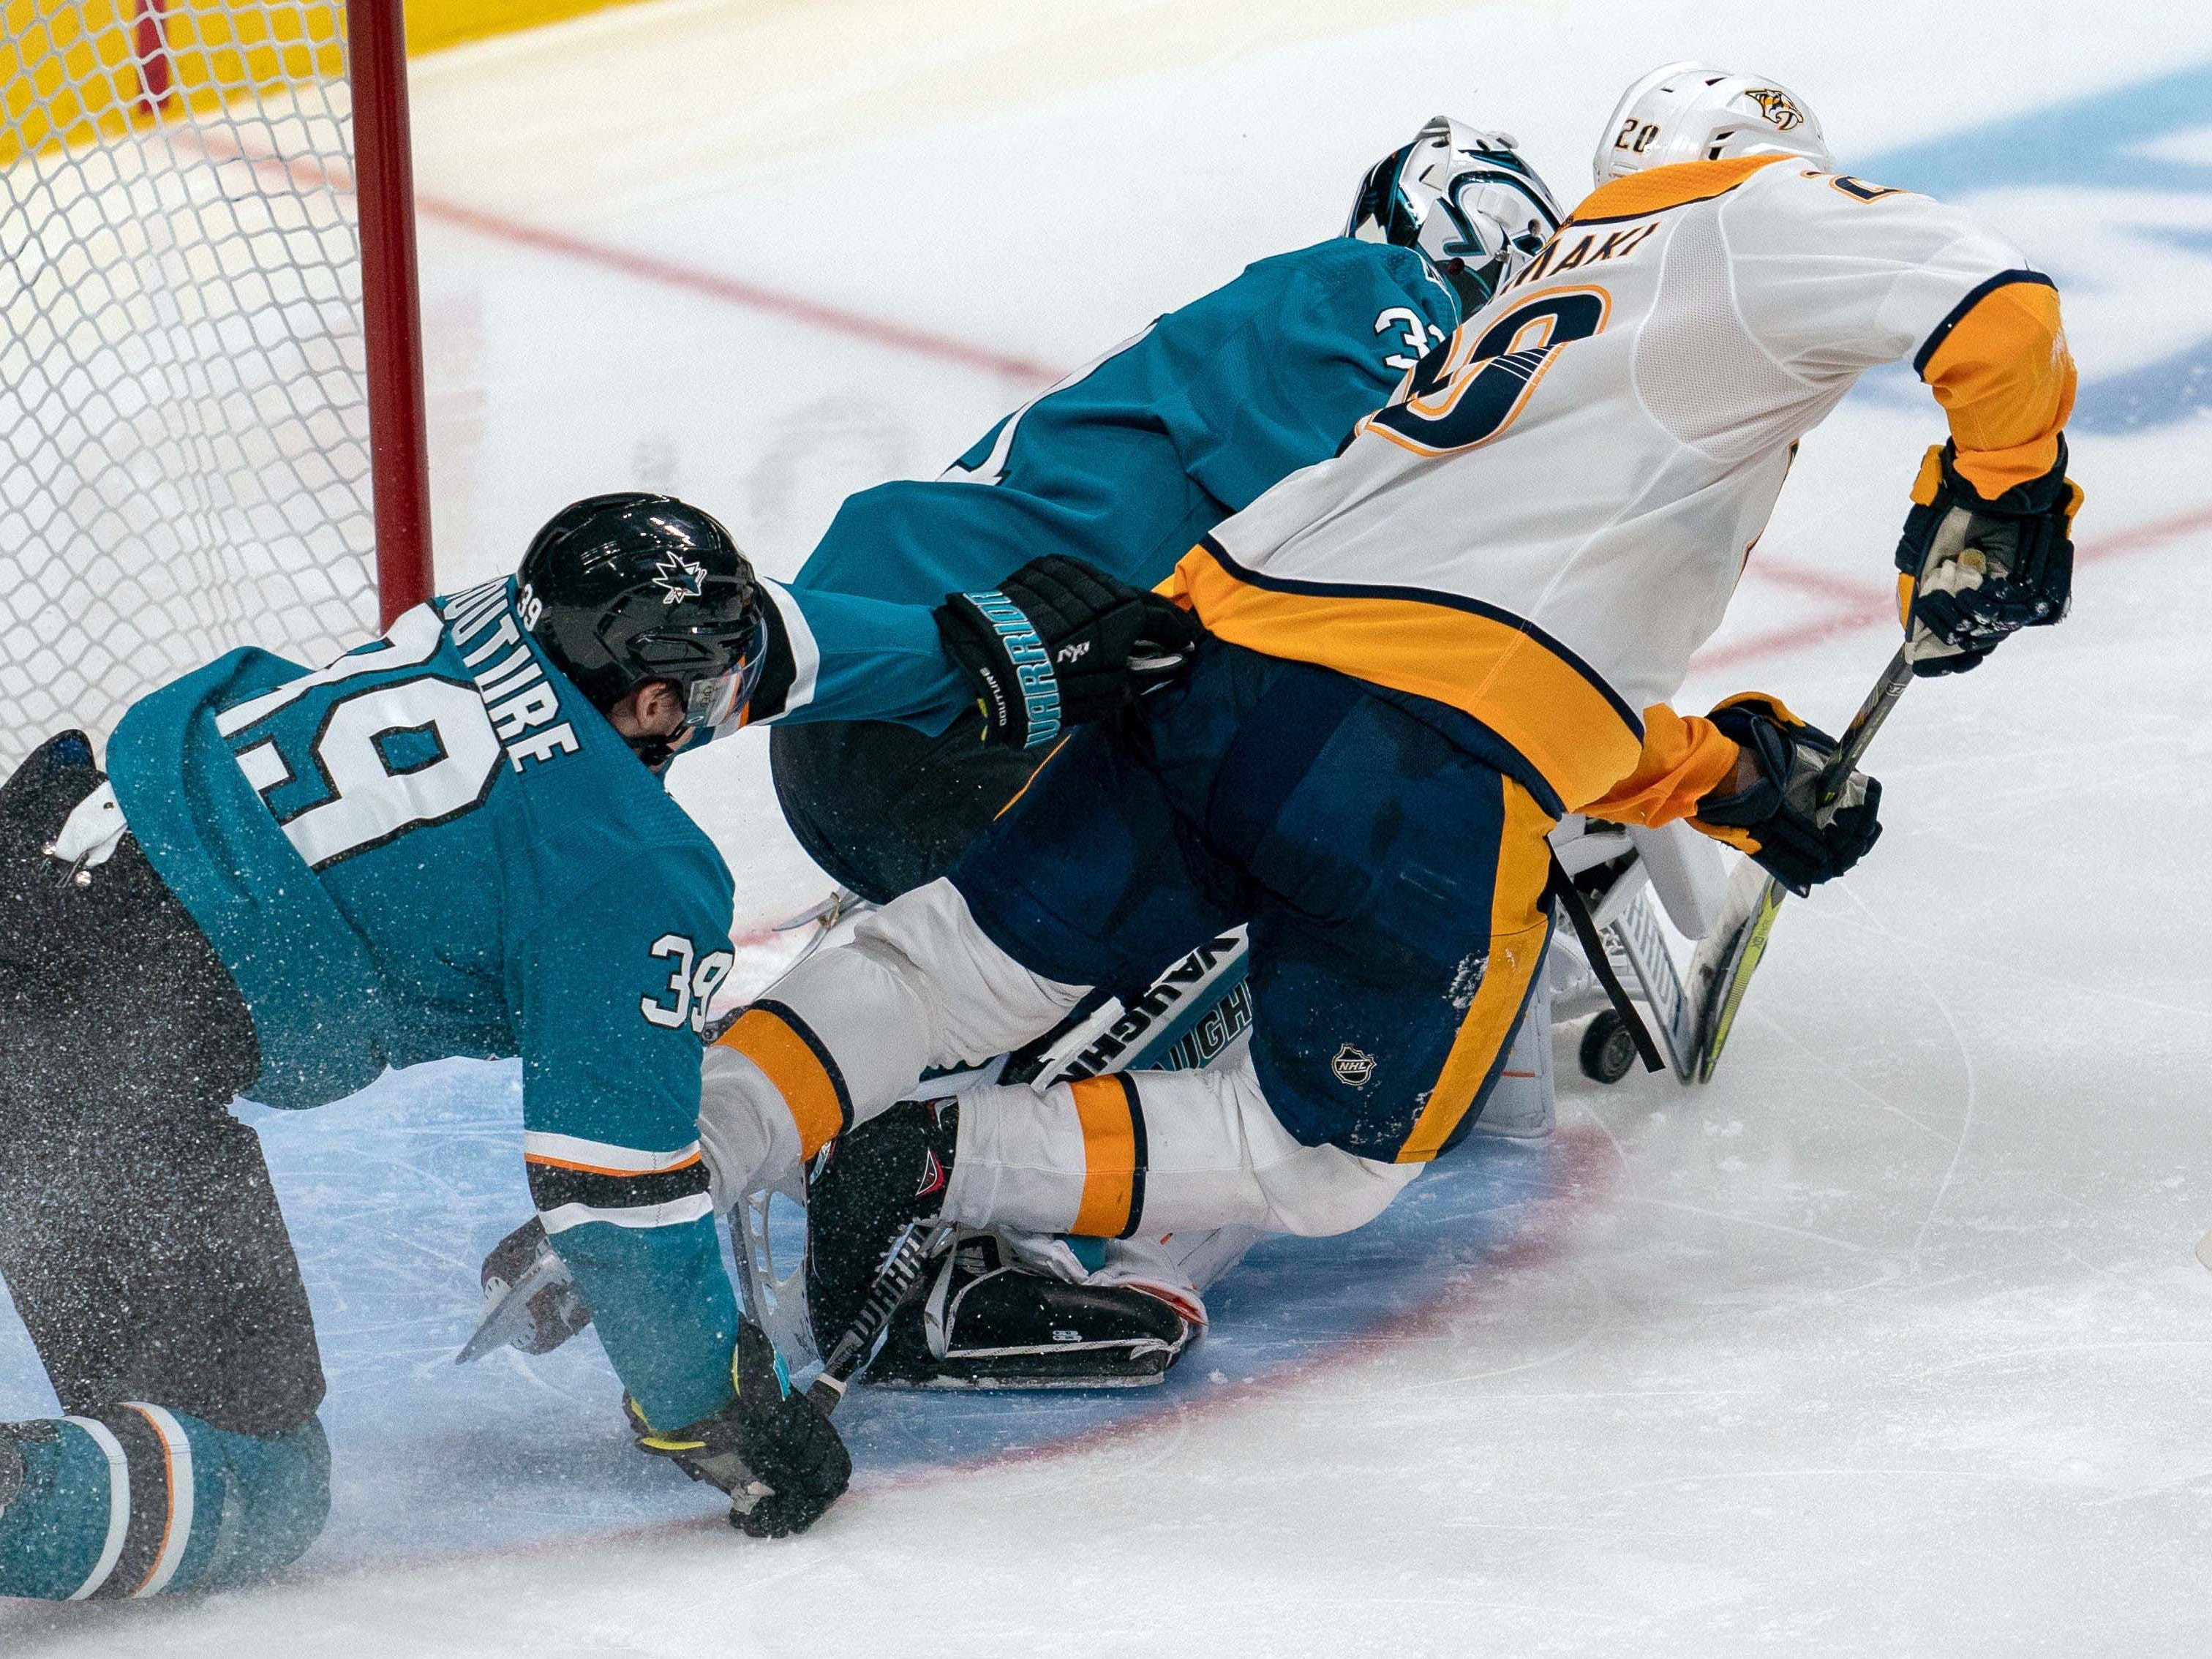 Nov 13: Sharks 5, Predators 4 -- Nashville Predators right wing Miikka Salomaki (20) shot is blocked by San Jose Sharks goaltender Martin Jones (31) during the third period at SAP Center at San Jose.